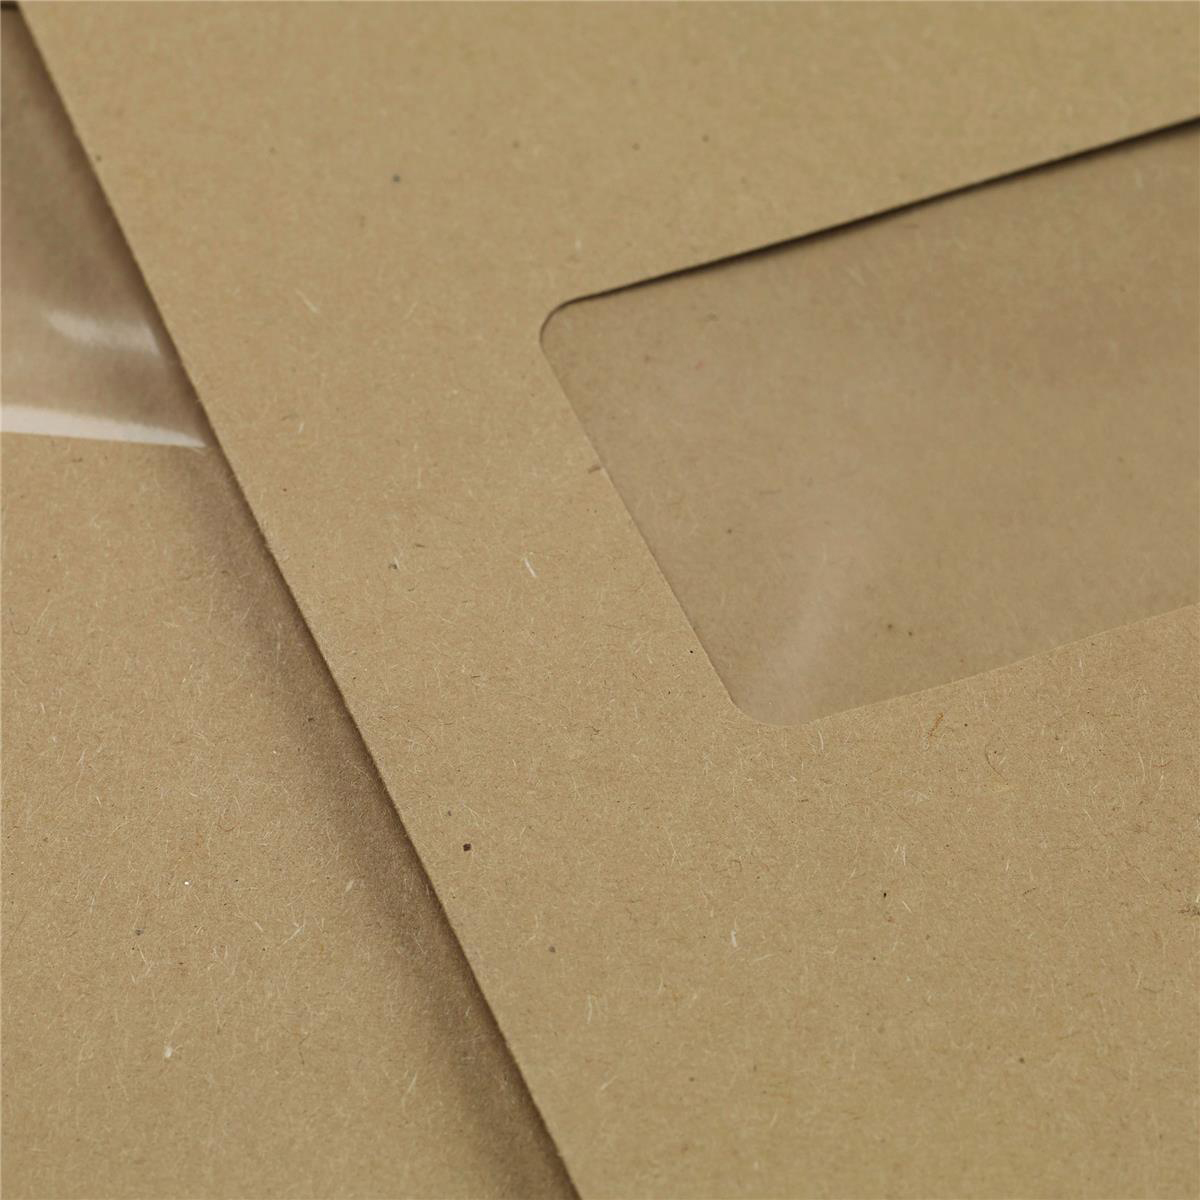 5 Star Office Envelopes PEFC Pocket Self Seal Window 90gsm C4 324x229mm Manilla [Pack 250]